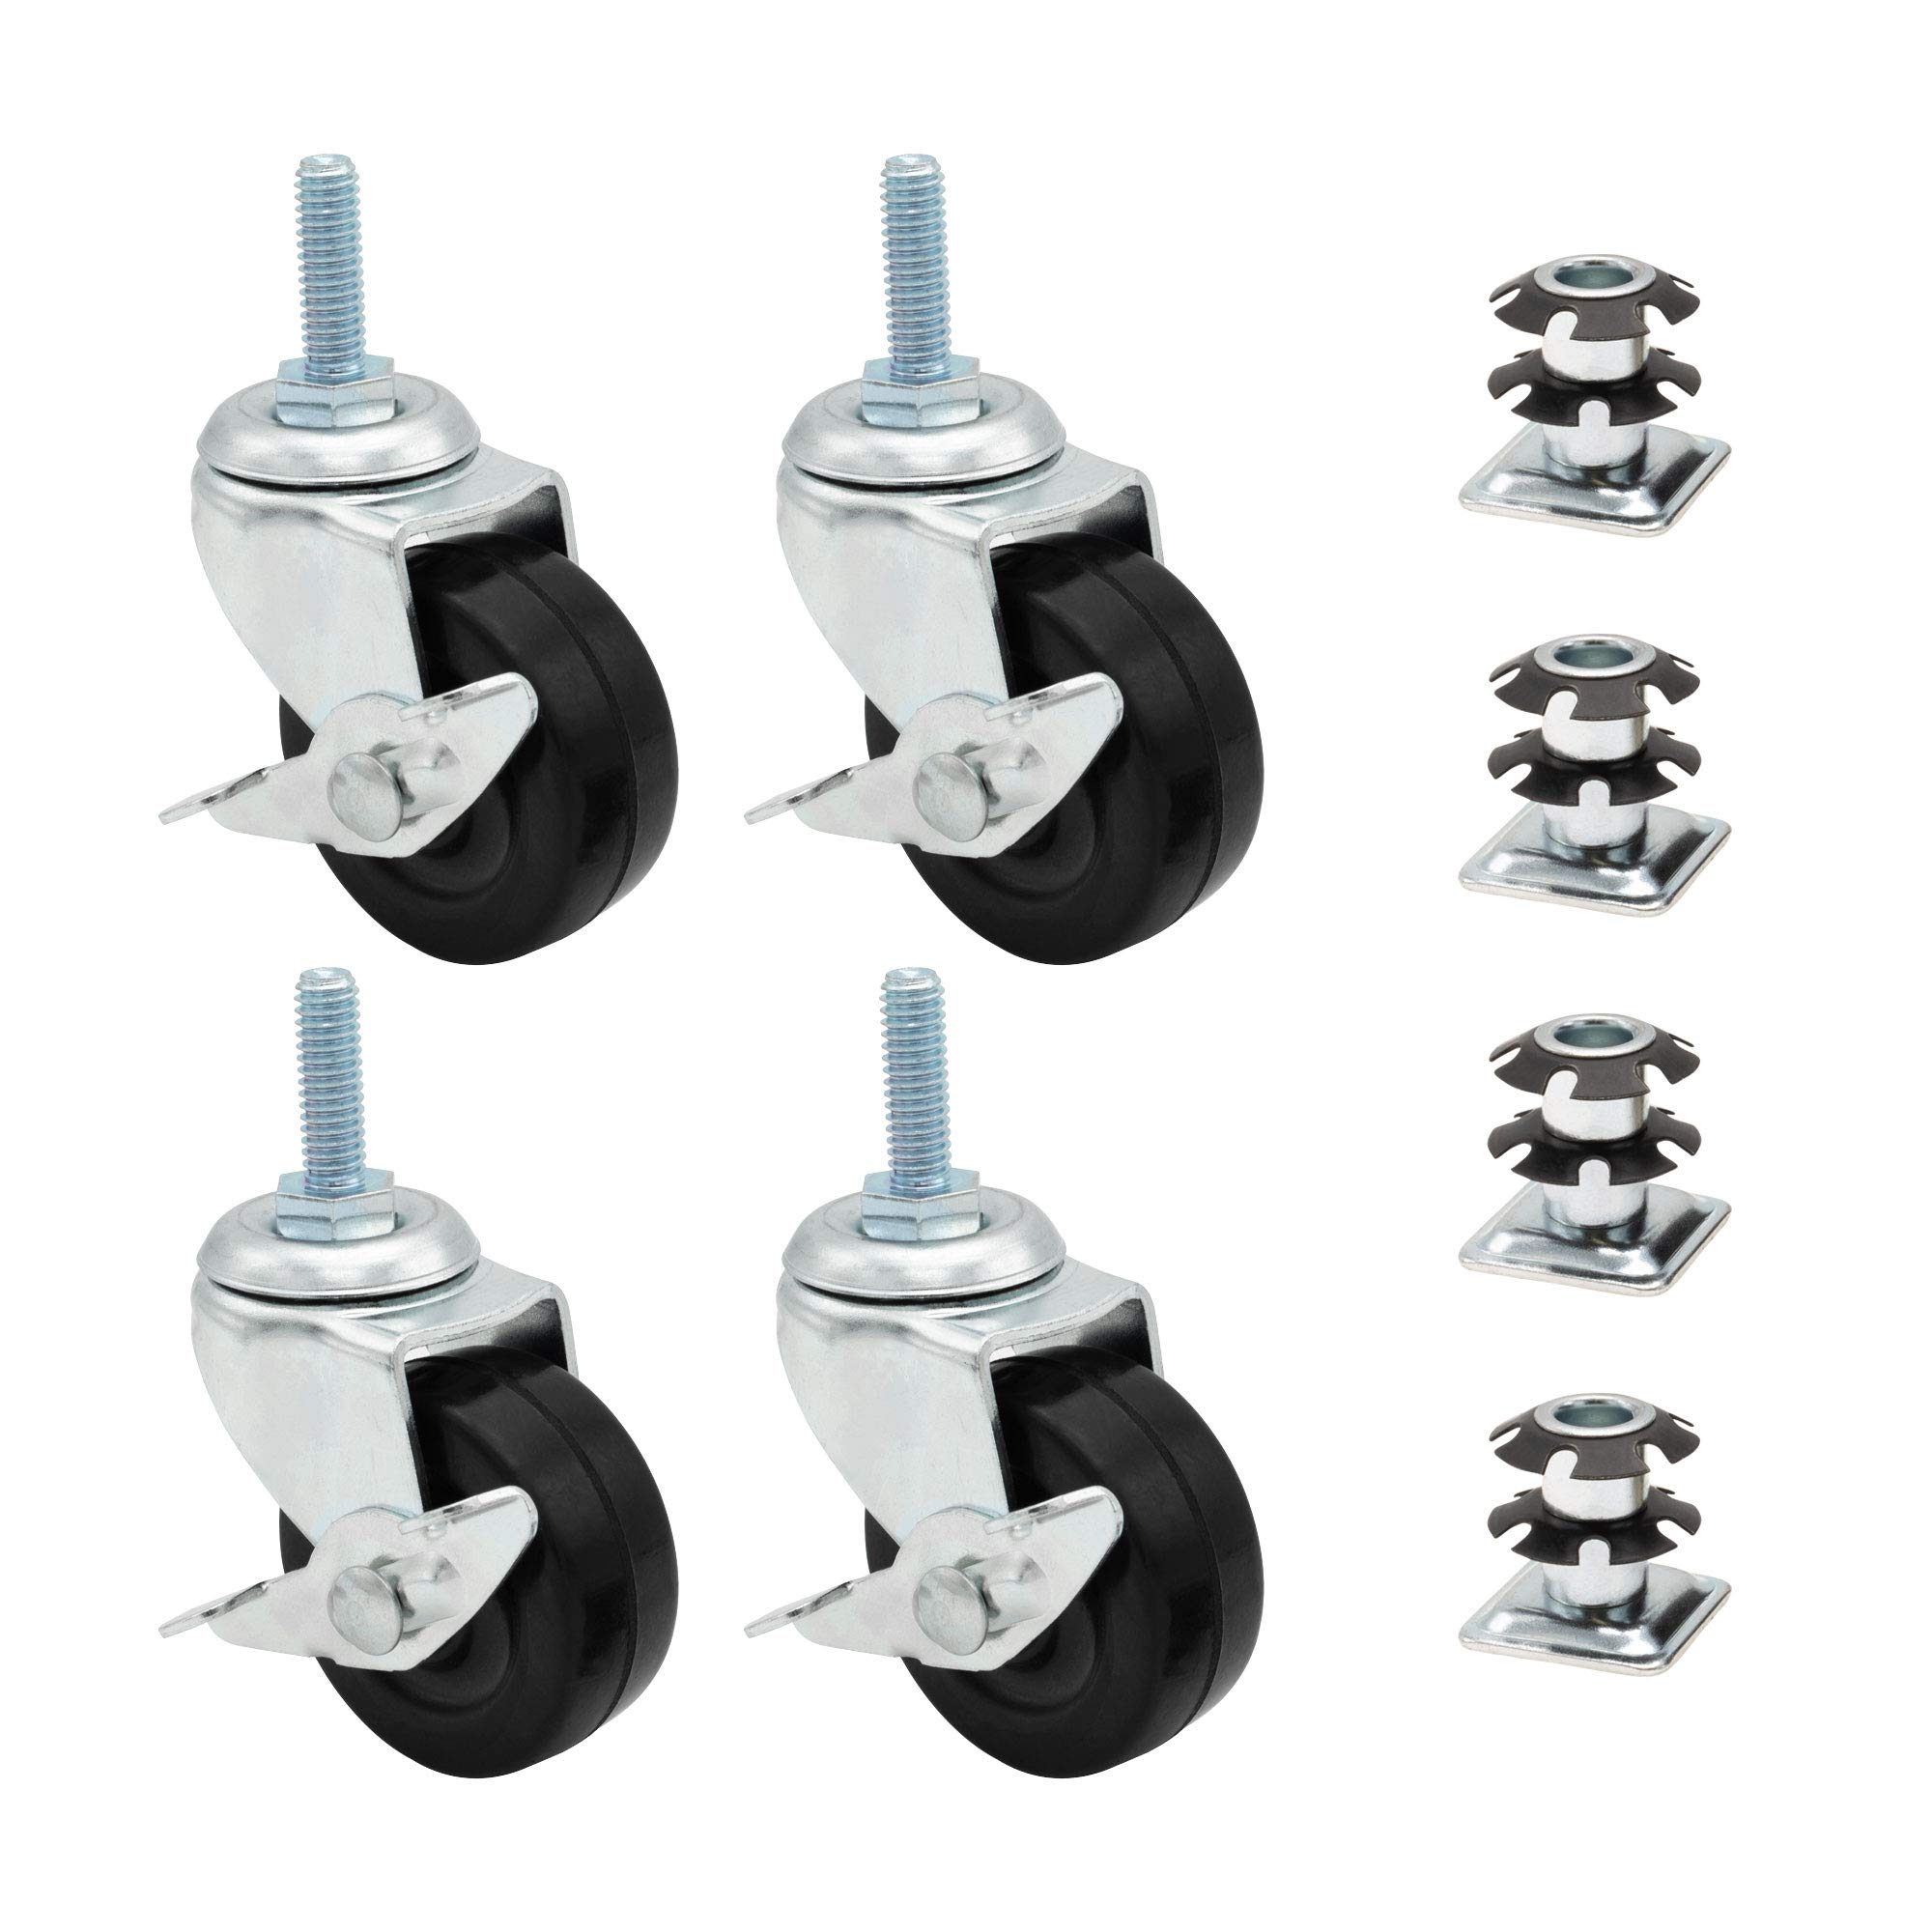 1 Inch Metal Square Double Star Caster Insert with 2 Inch Casters with Brakes 4 Pack by Outwater